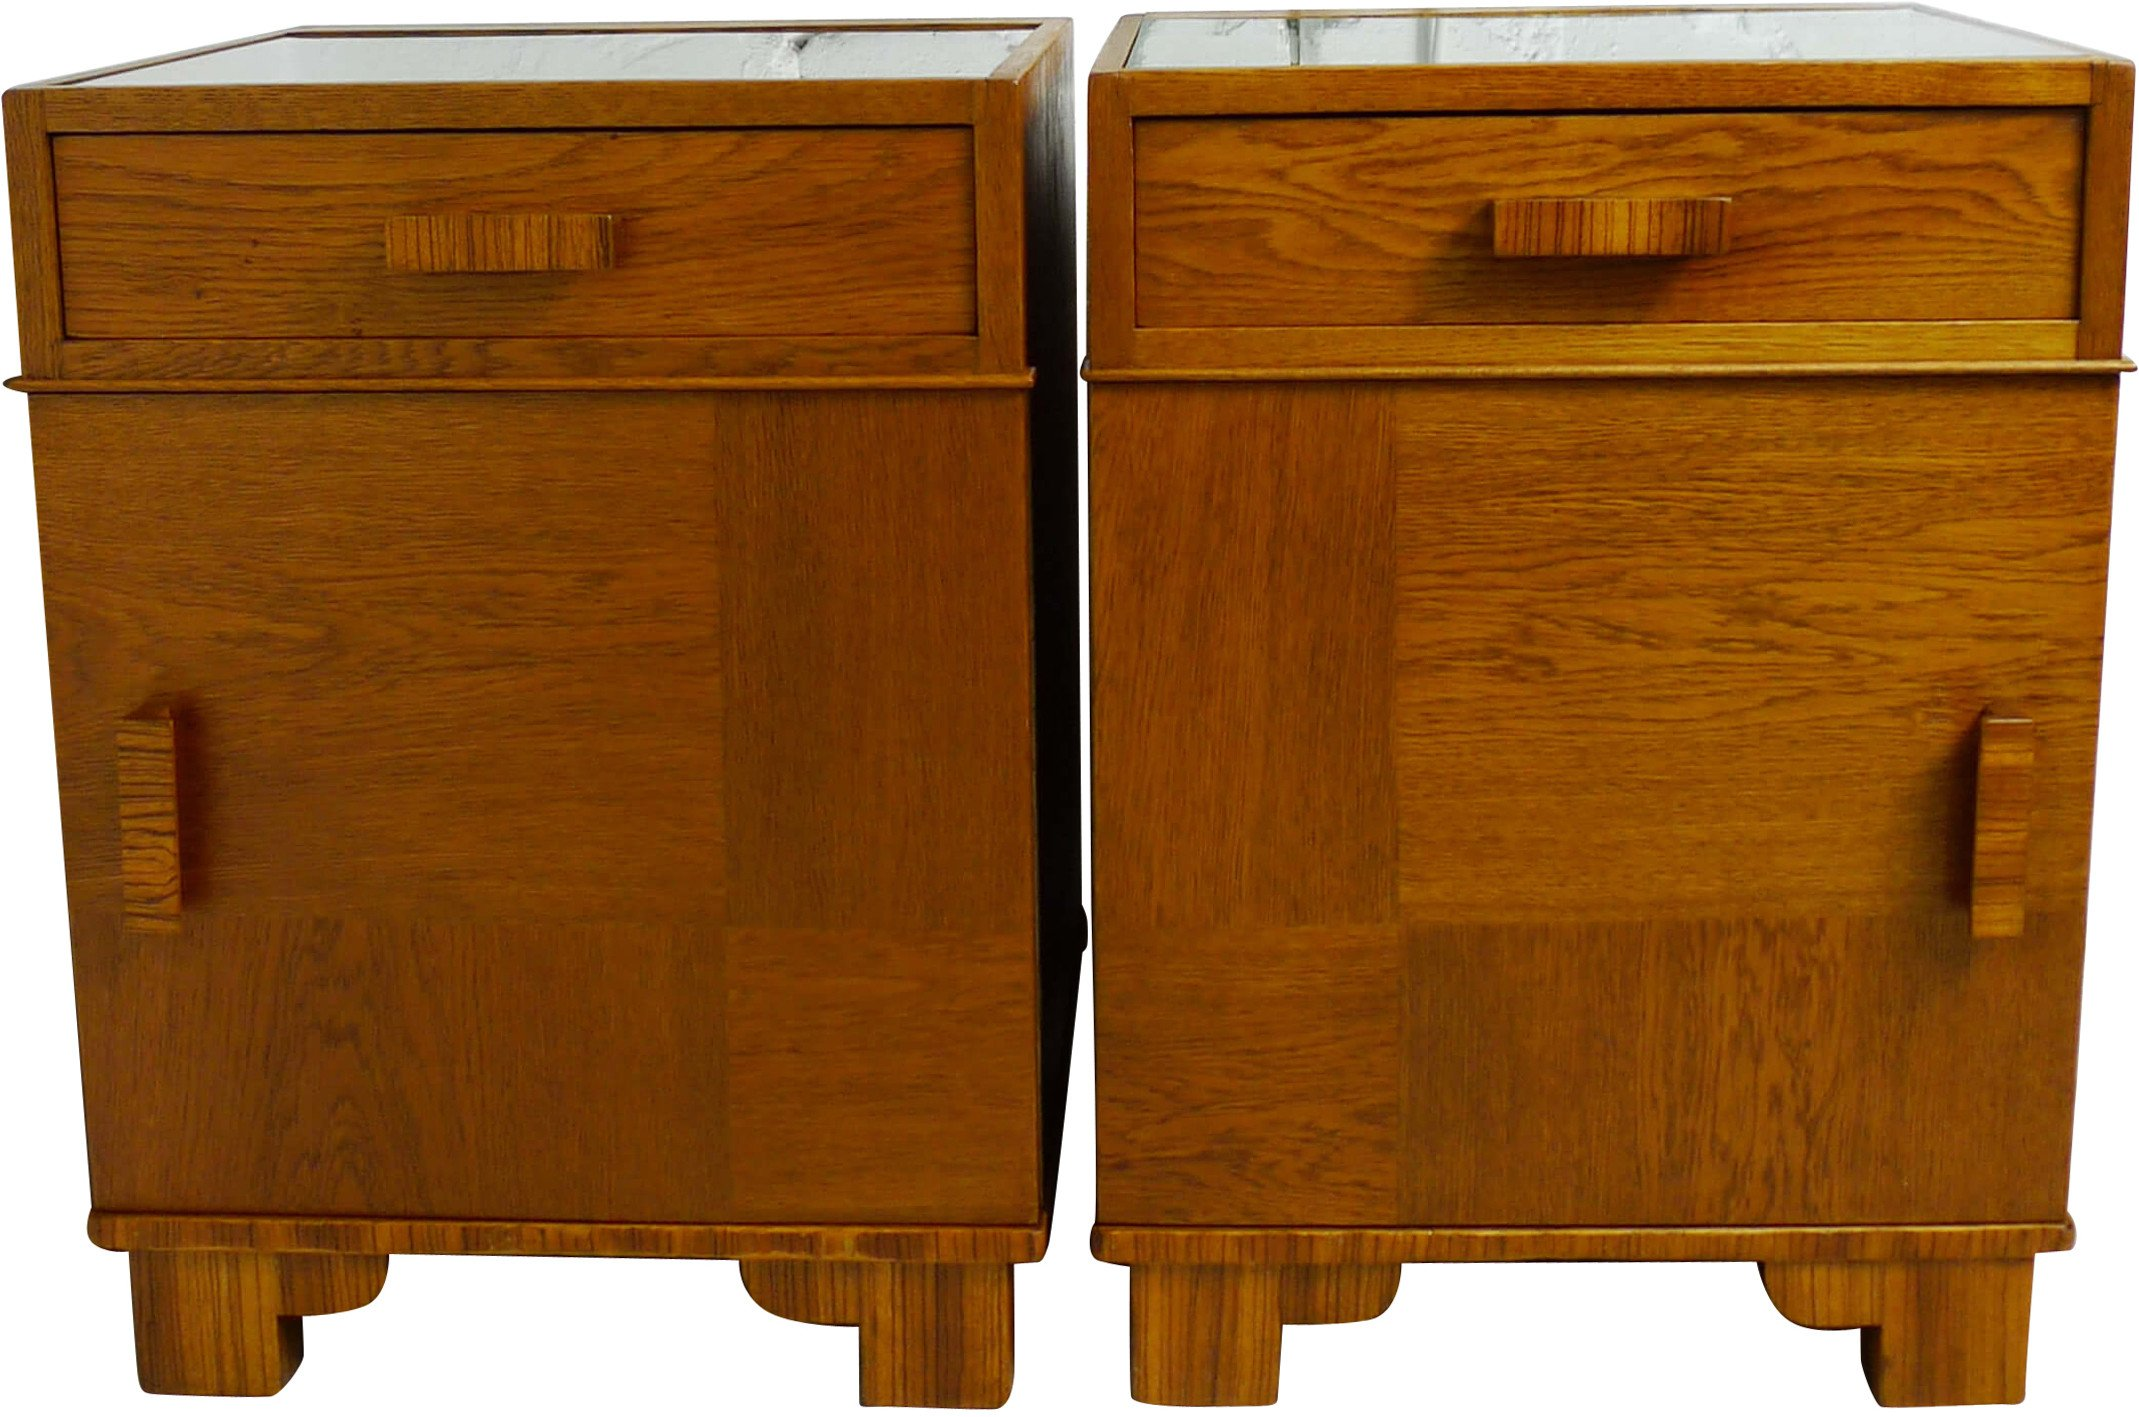 Pair of Bedside Cabinets, 1930s